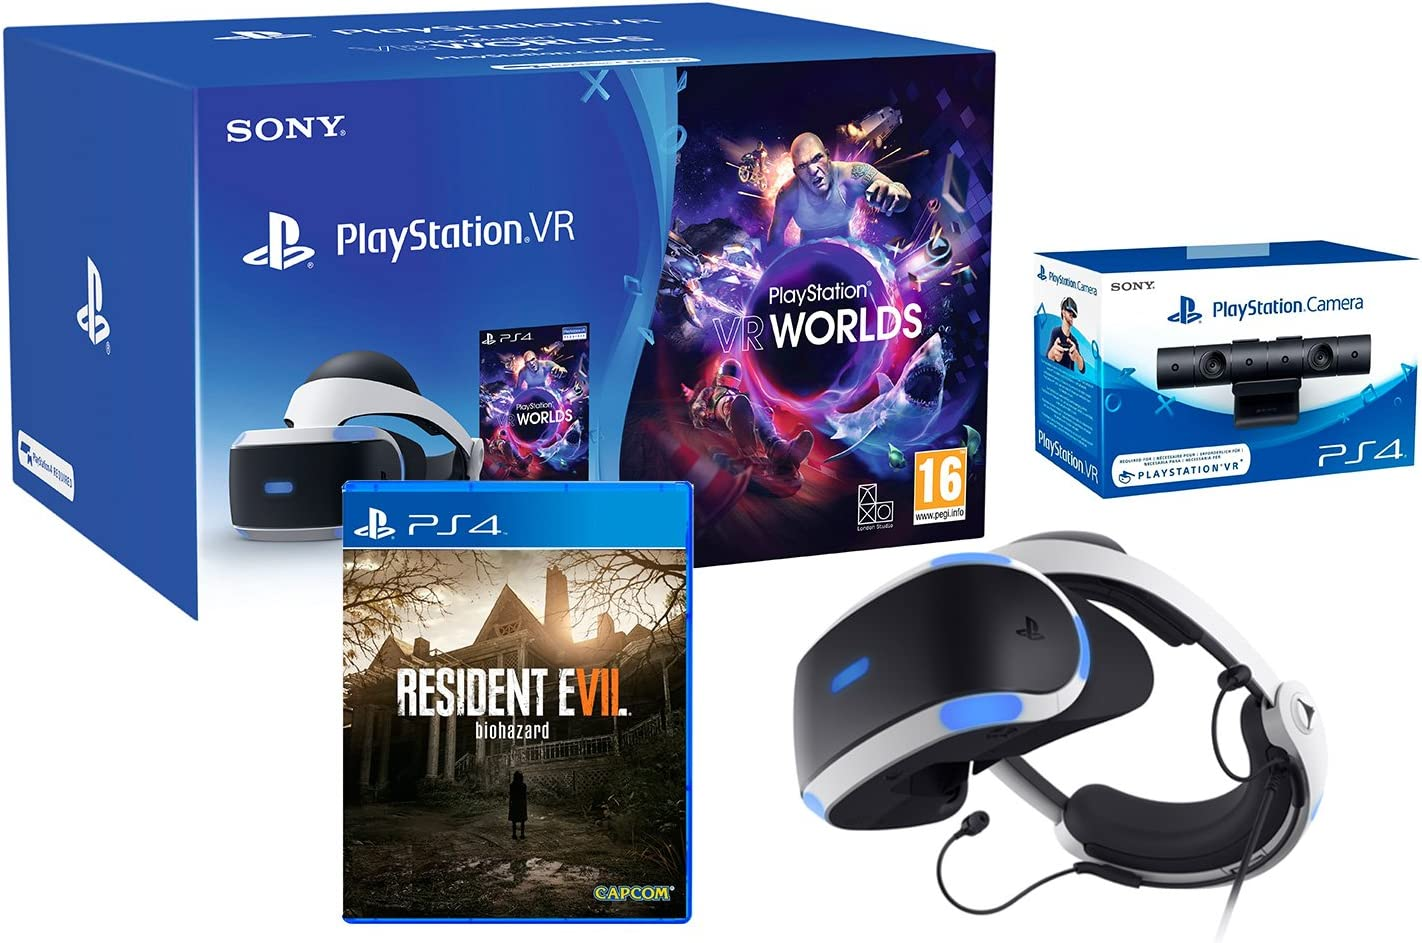 Playstation VR2 (cuh-zvr2) Resident Evil 7 Pack